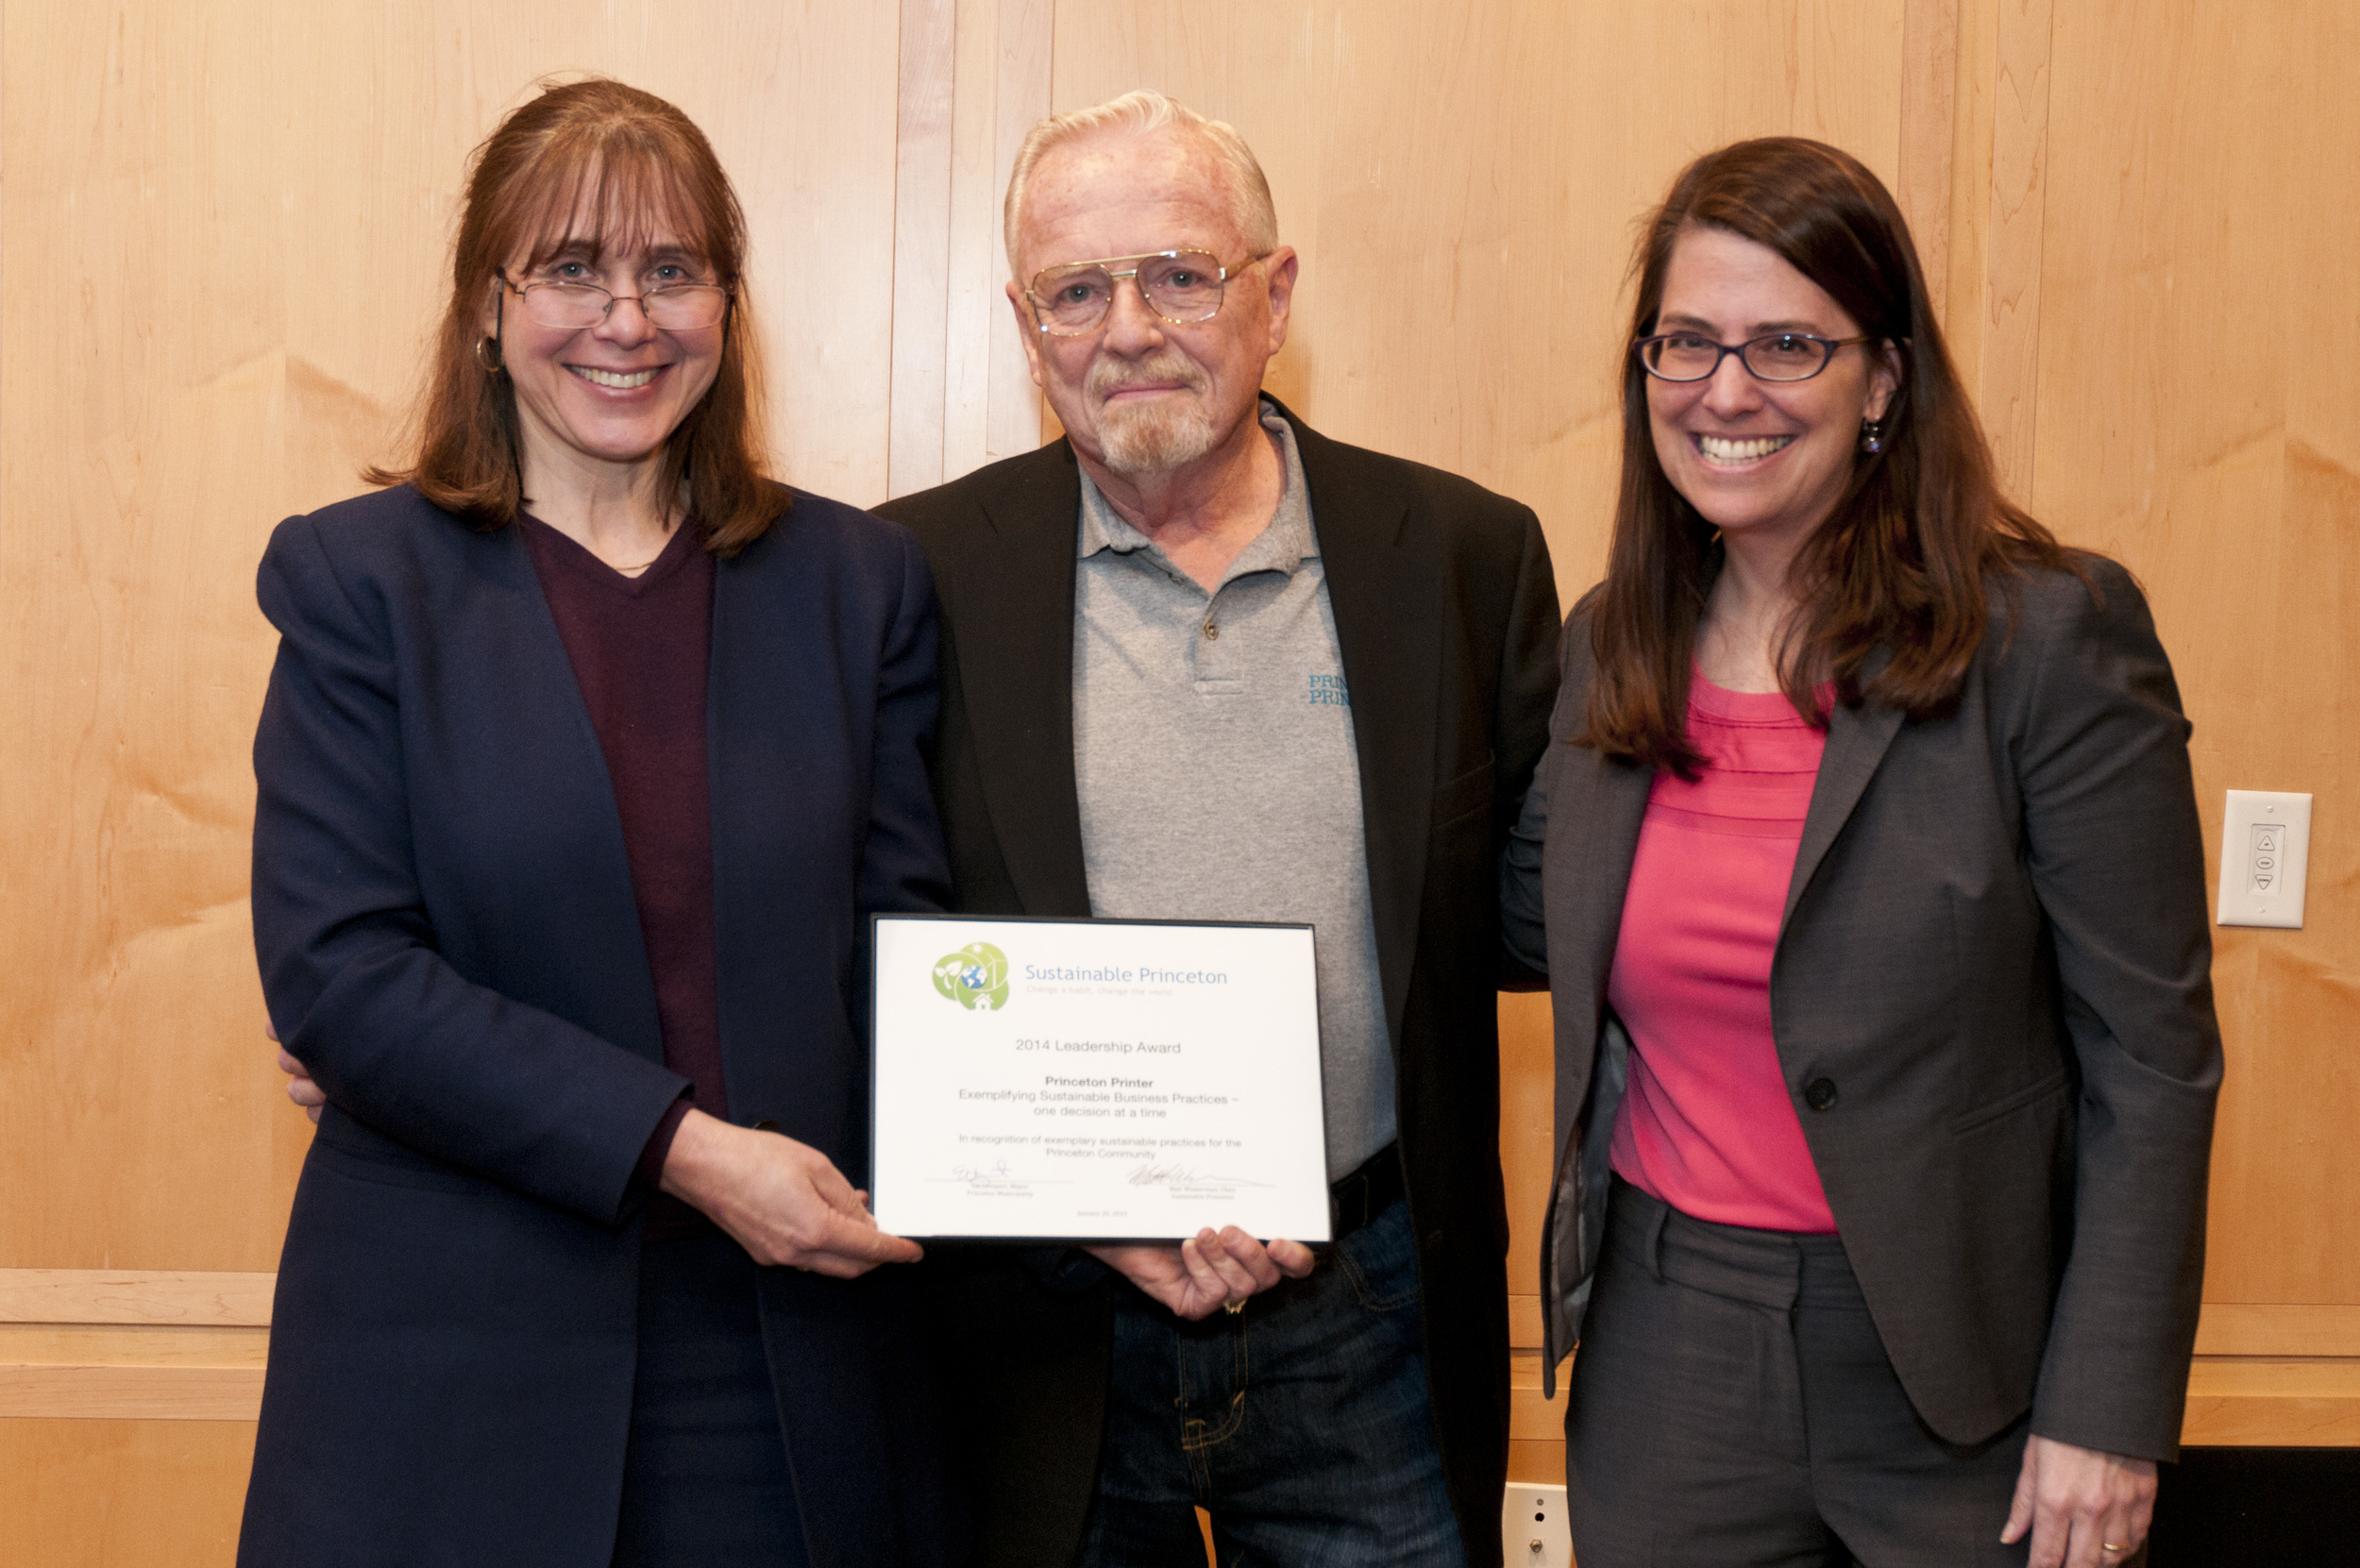 Bill Howard accepting for Princeton Printer with Sustainable Princeton Board Vice-Chair, Heidi Fichtenbaum and Mayor Liz Lempert. Photo by Cyndi Shattuck